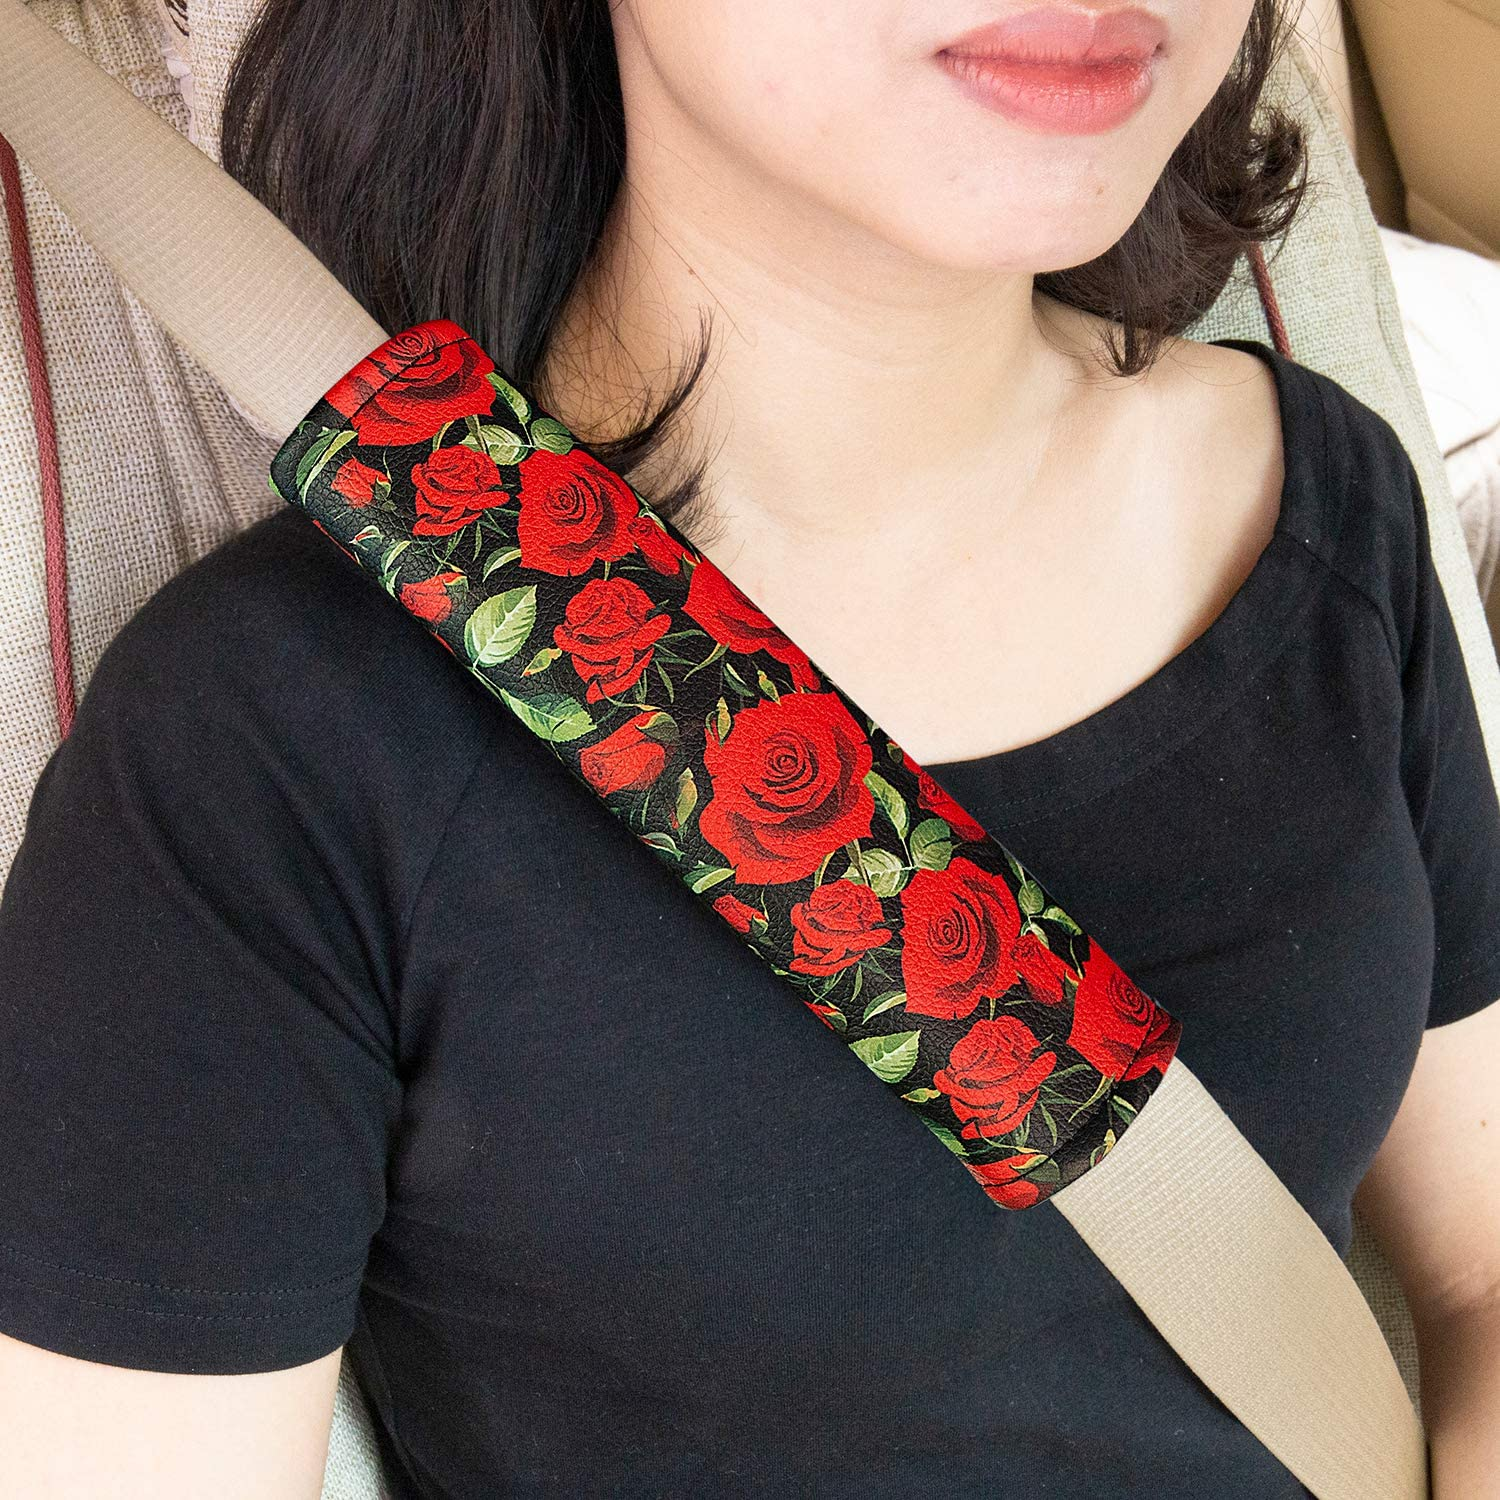 Camouflage Adult Seat Belt Shoulder Strap Covers Harness Pad for Car//Bag,Soft Comfort Helps Protect You Neck Shoulder from The Seat Belt Rubbing Evankin 2 Pack Universal Car Seat Belt Pads